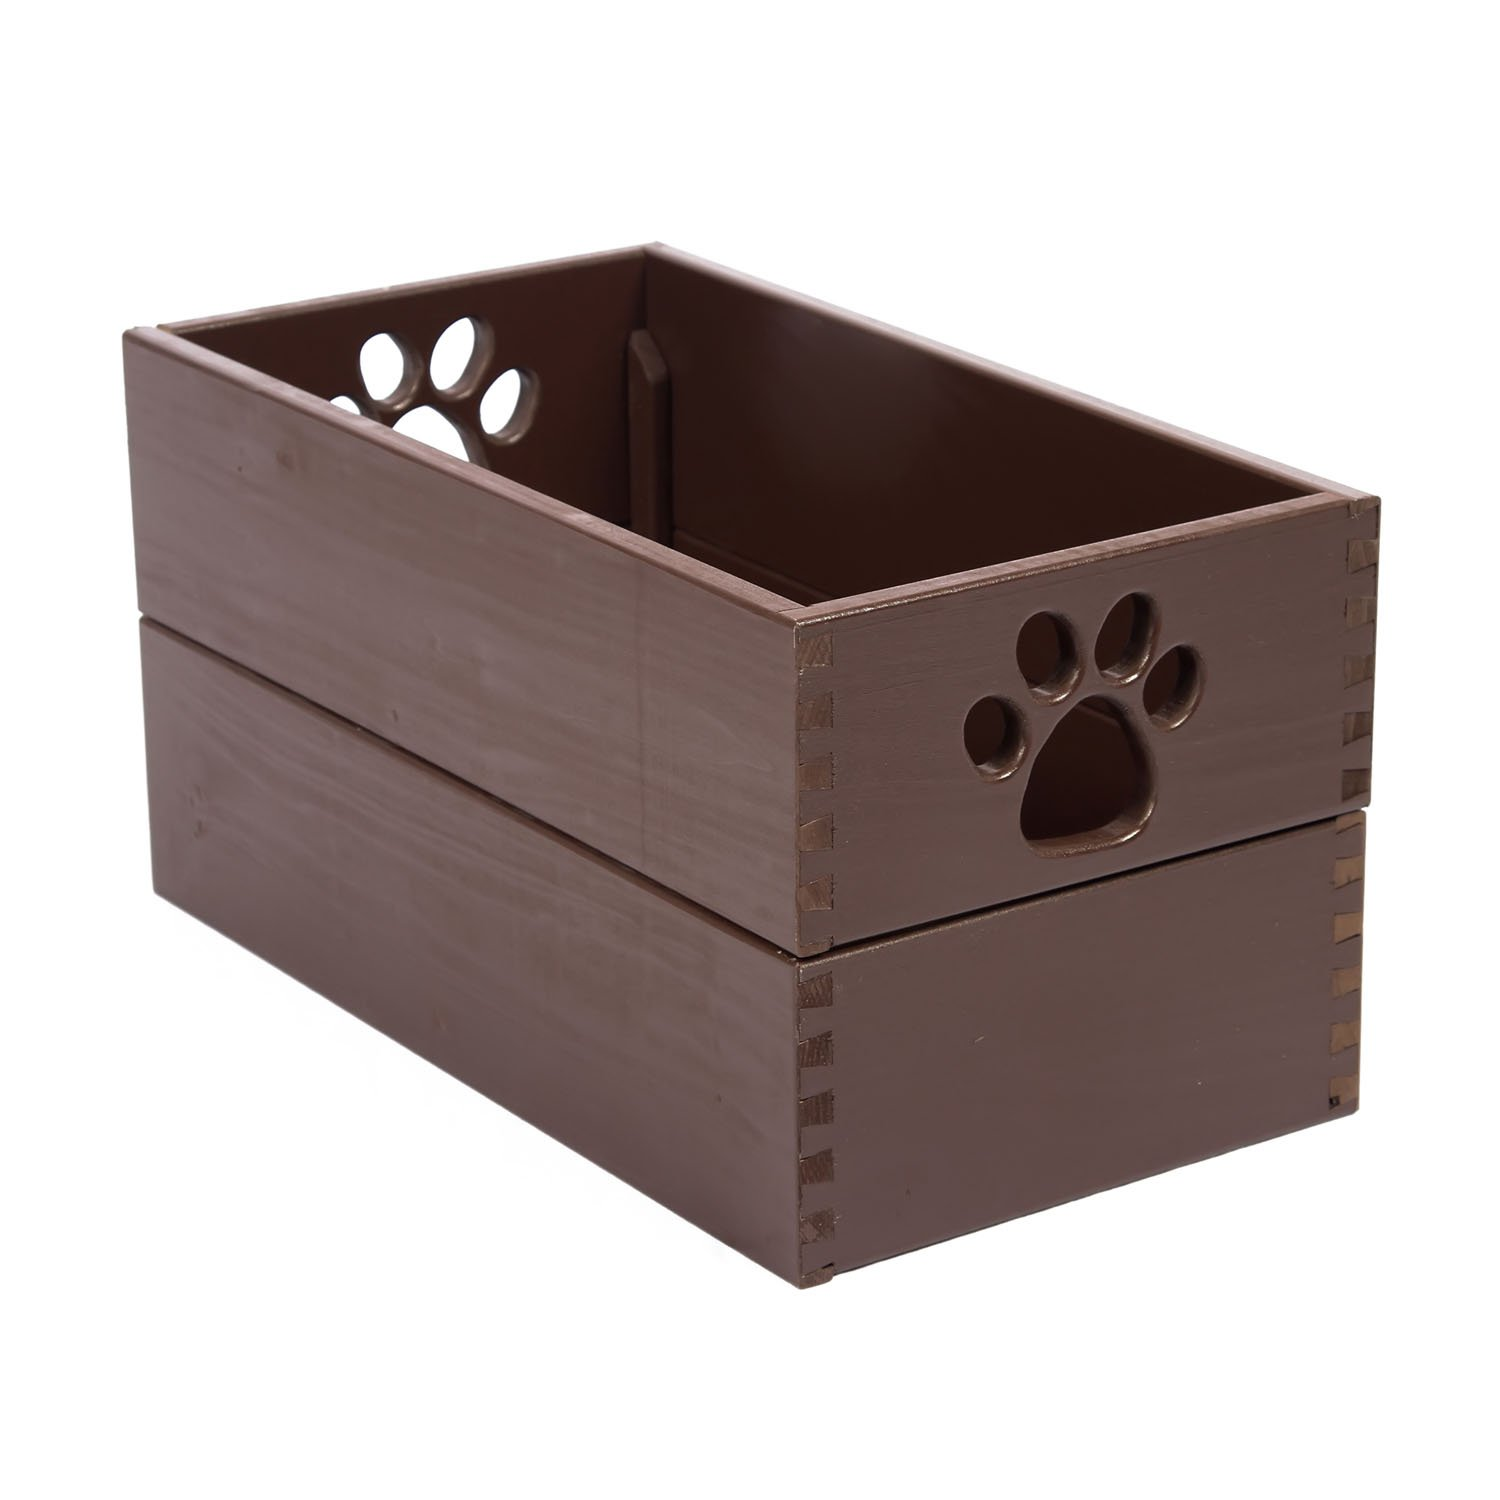 Amazon.com : Dynamics Home Indoor Wooden Dog Essential Doll Storage Bin  Organizer Pet Toy Box Mahogany : Pet Supplies